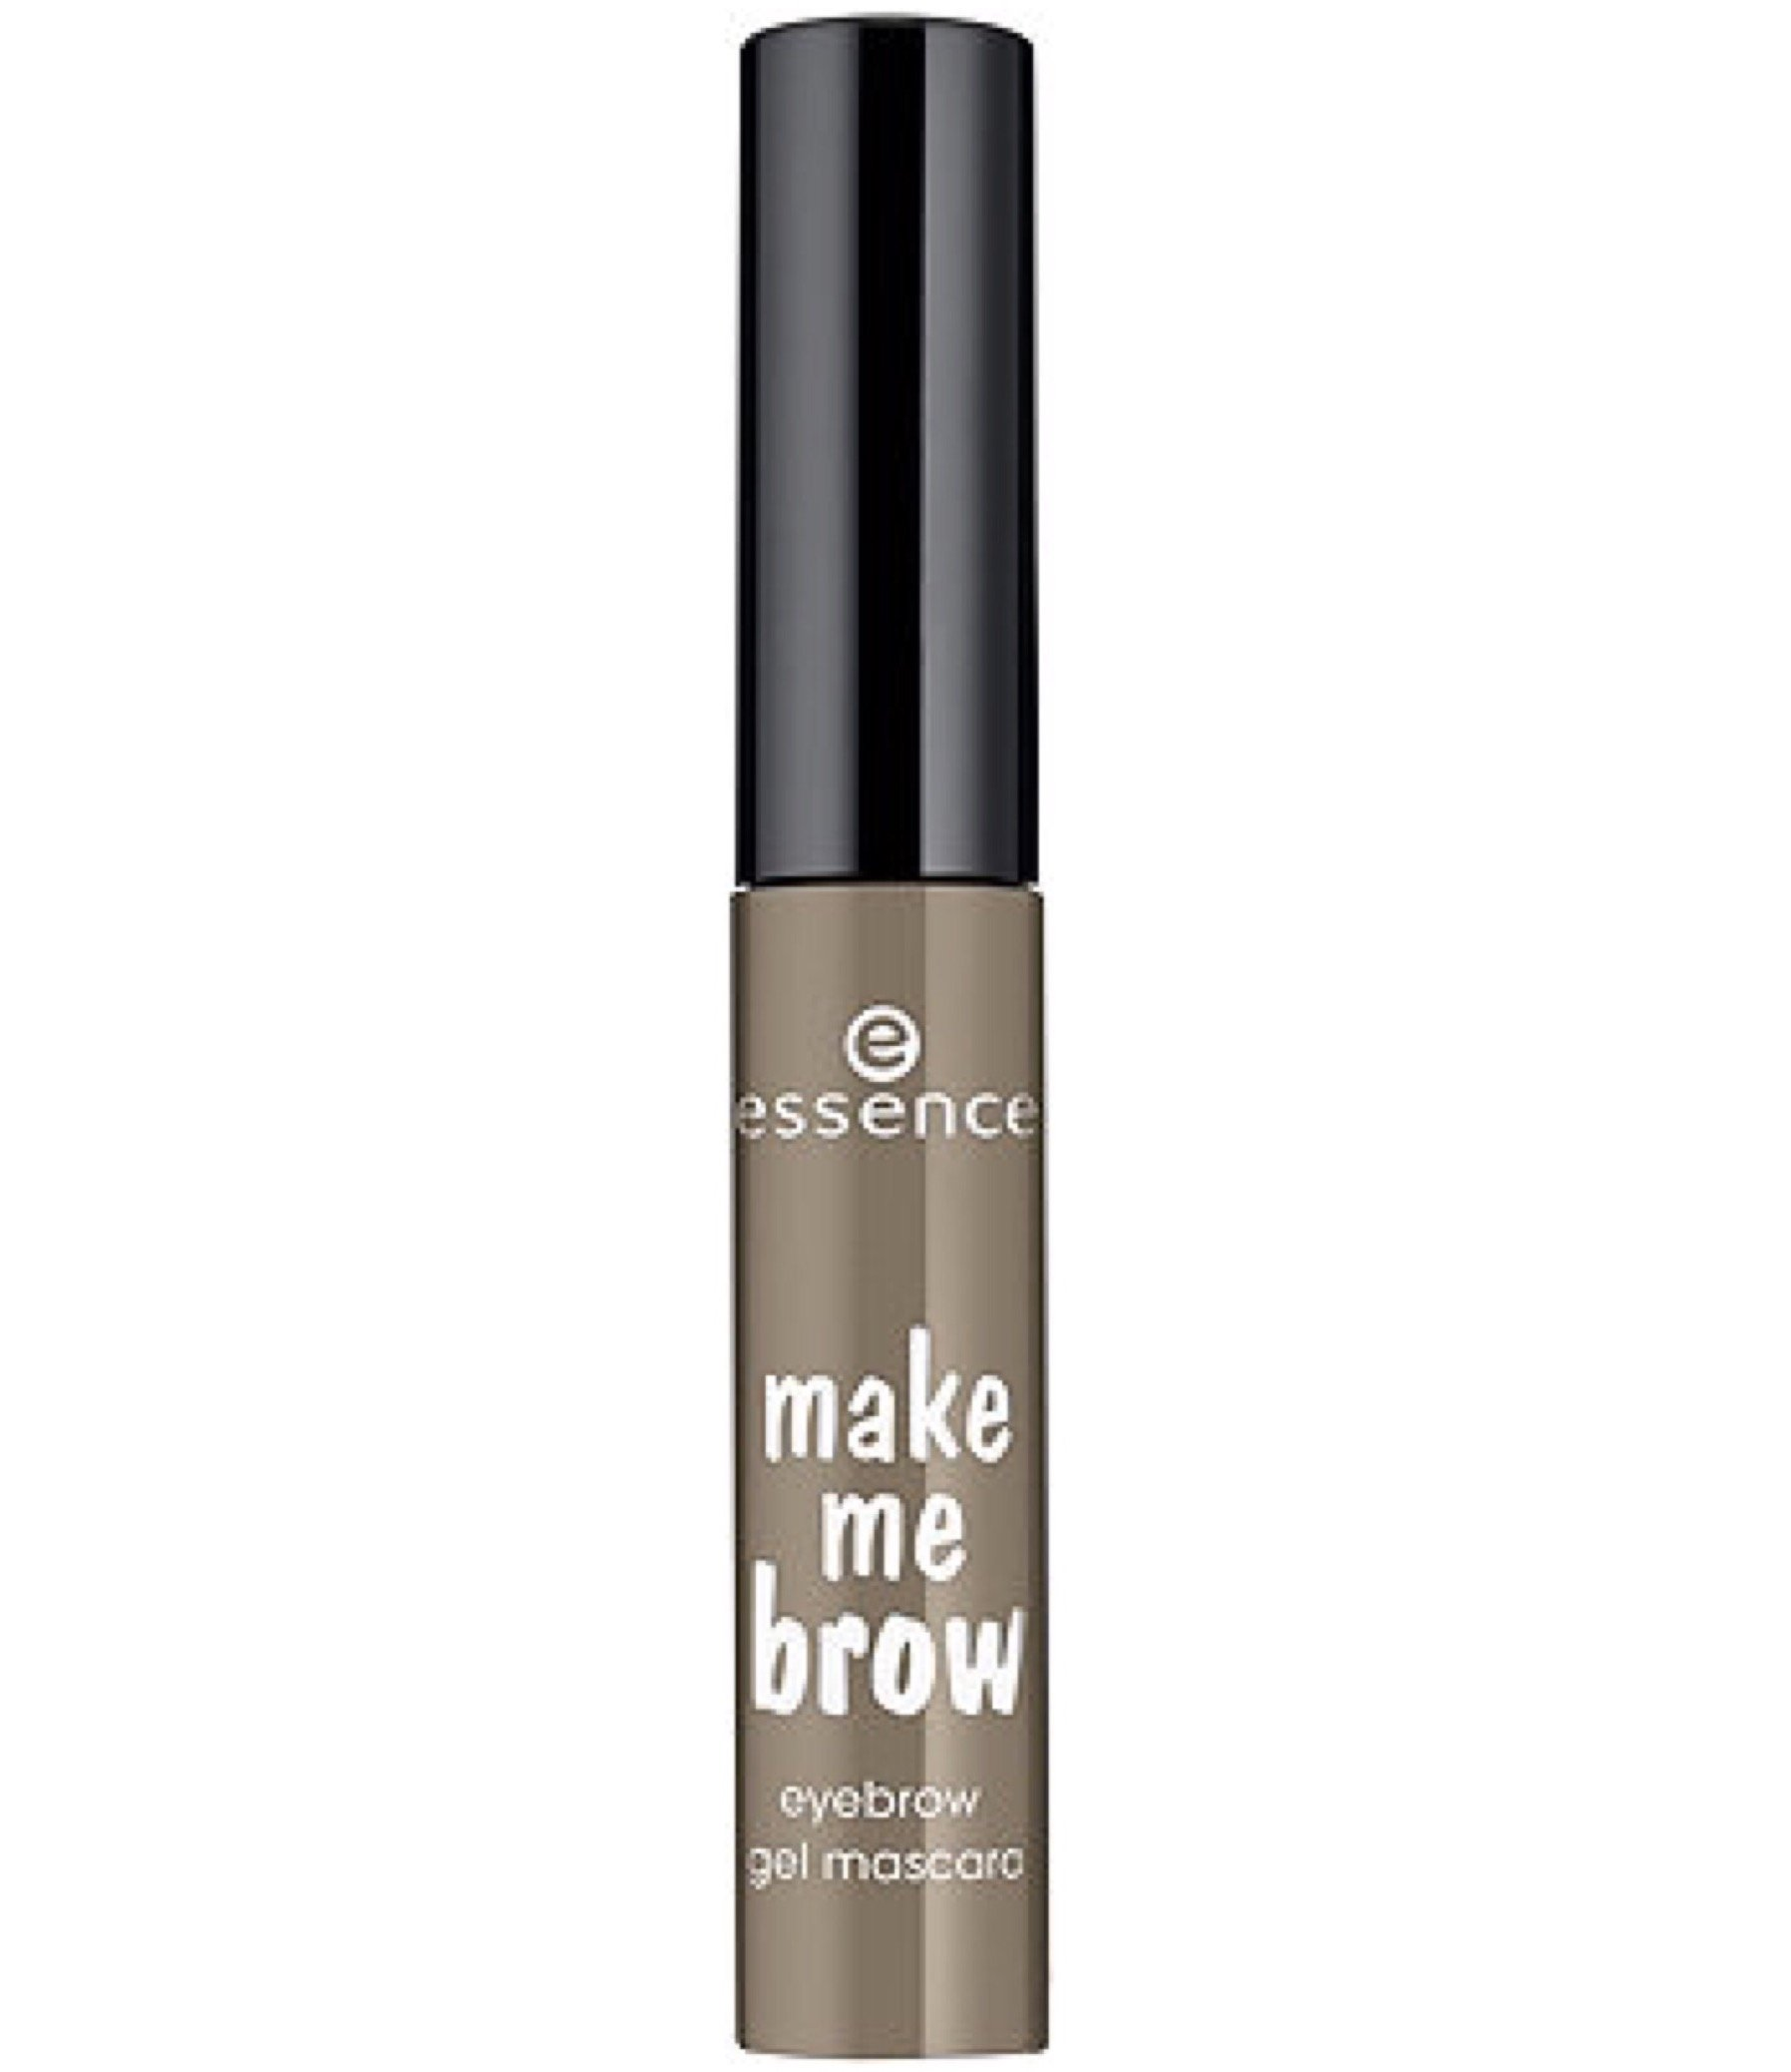 essence make me brow eyebrow gel mascara 03 soft browny brows by texpertnmore